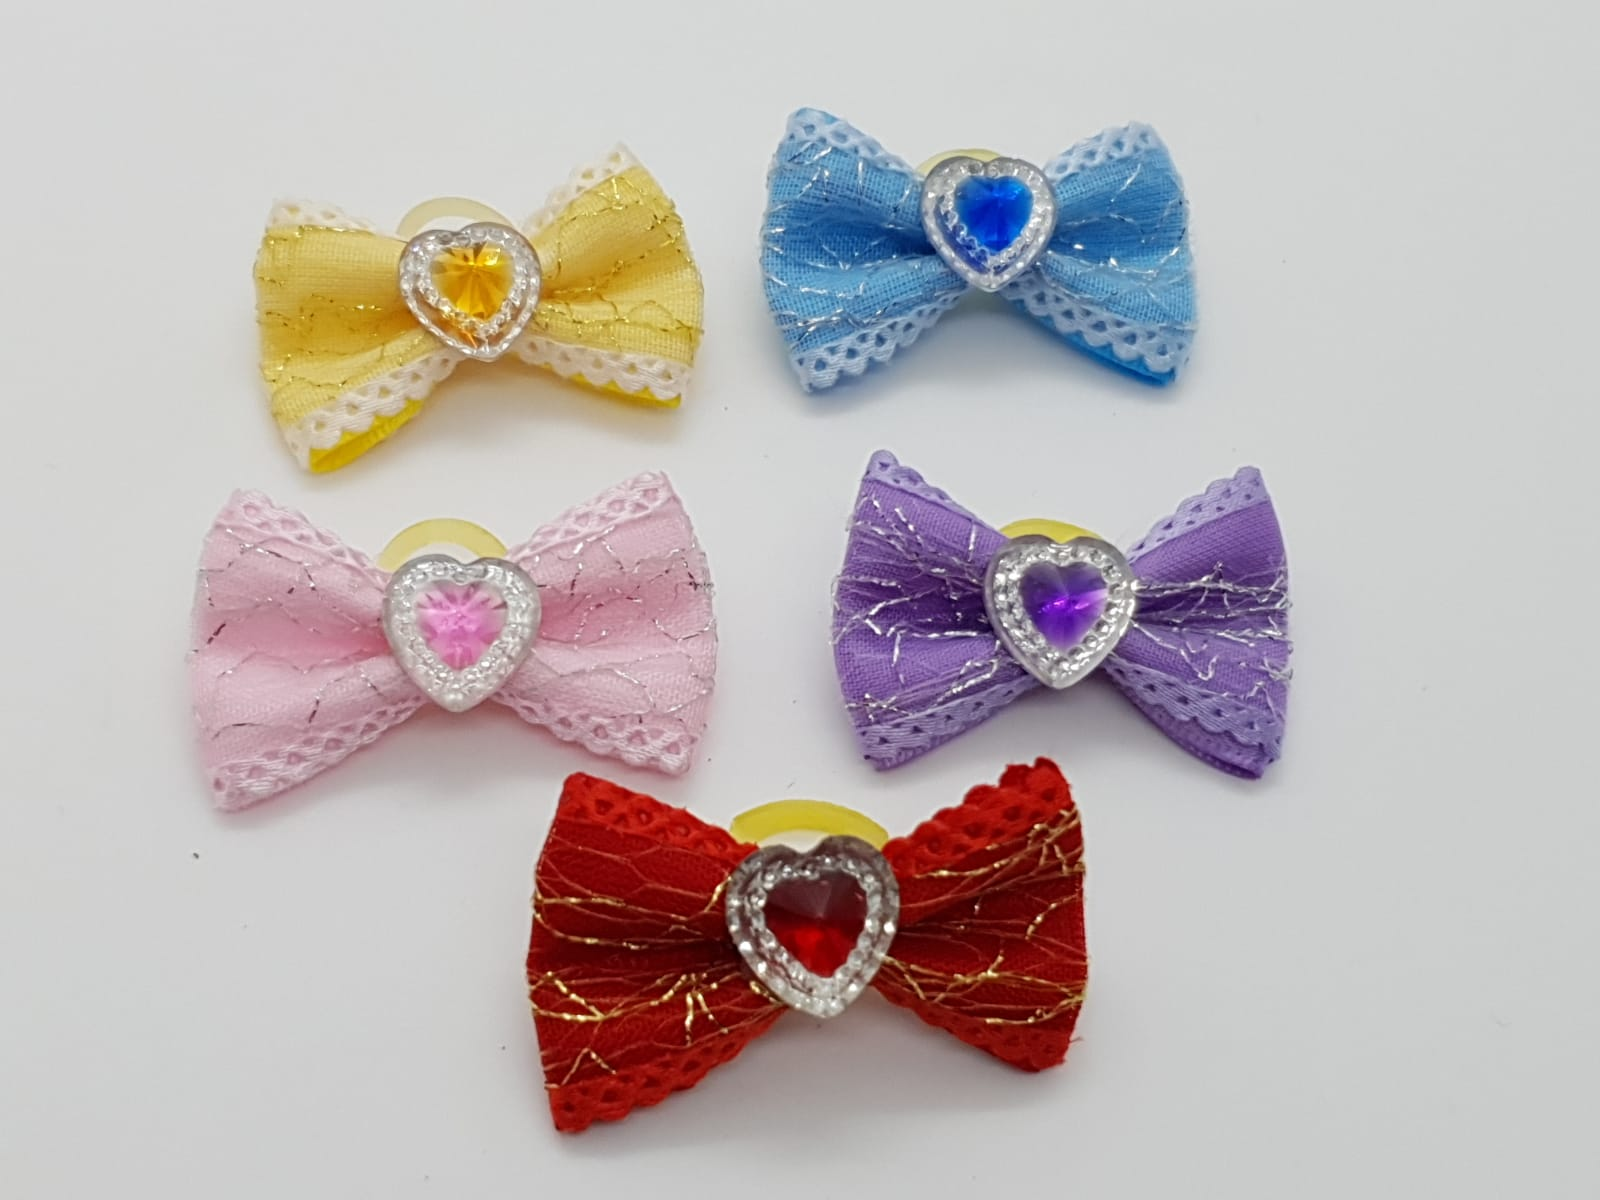 Satin and lace top knot bows with elastic